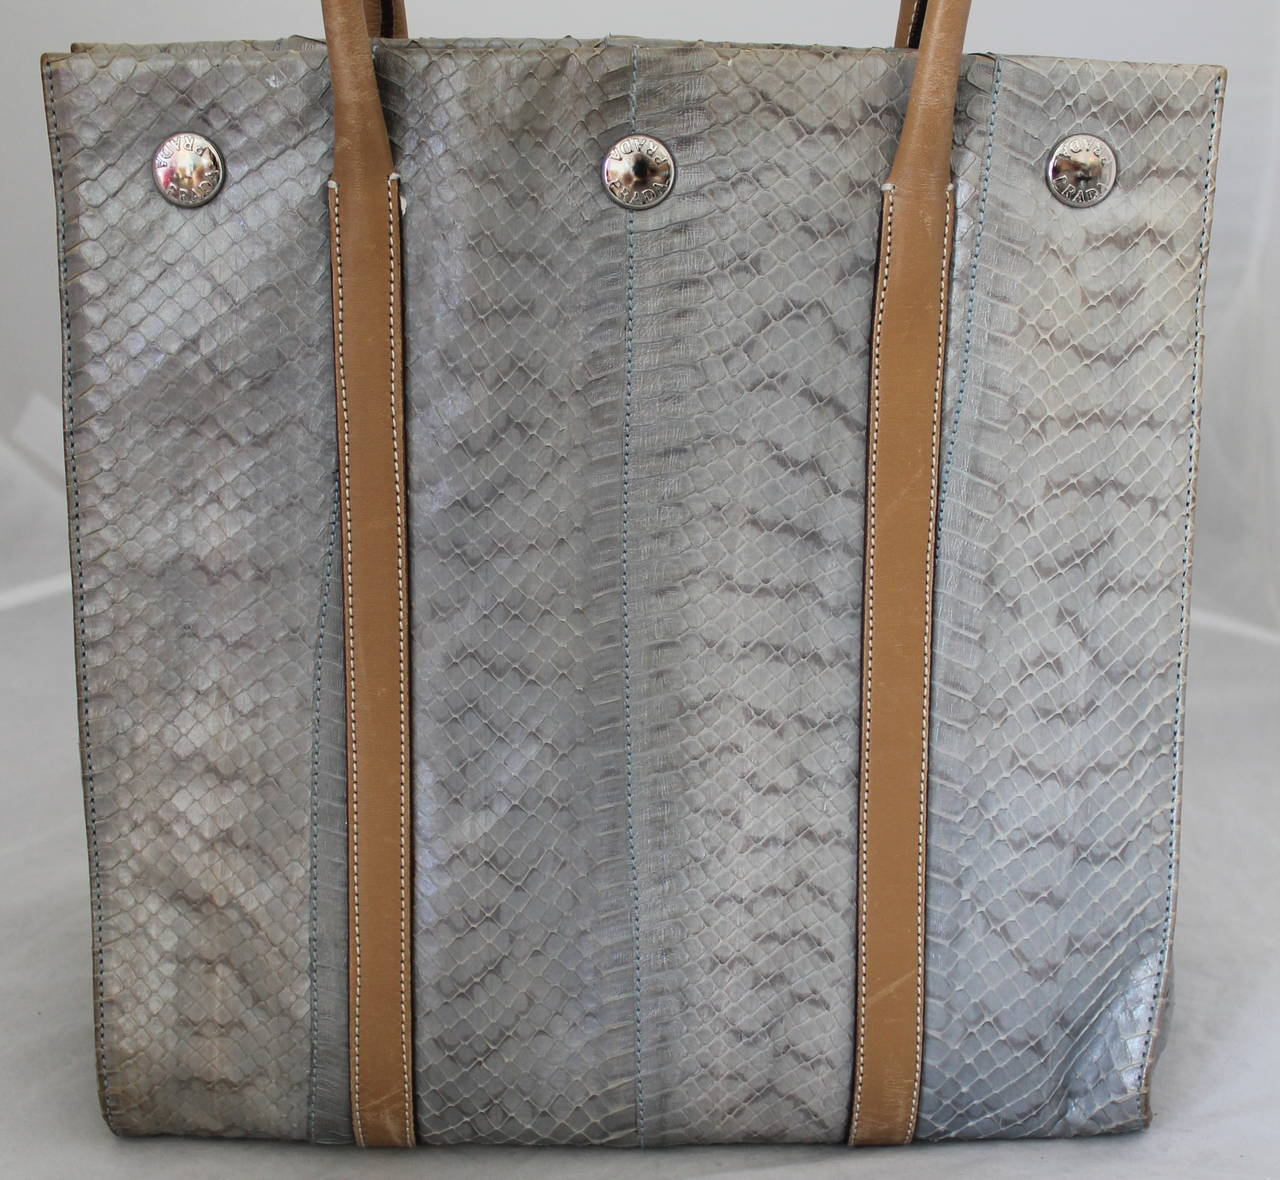 Prada Silver Snakeskin & Beige Leather Handbag 3